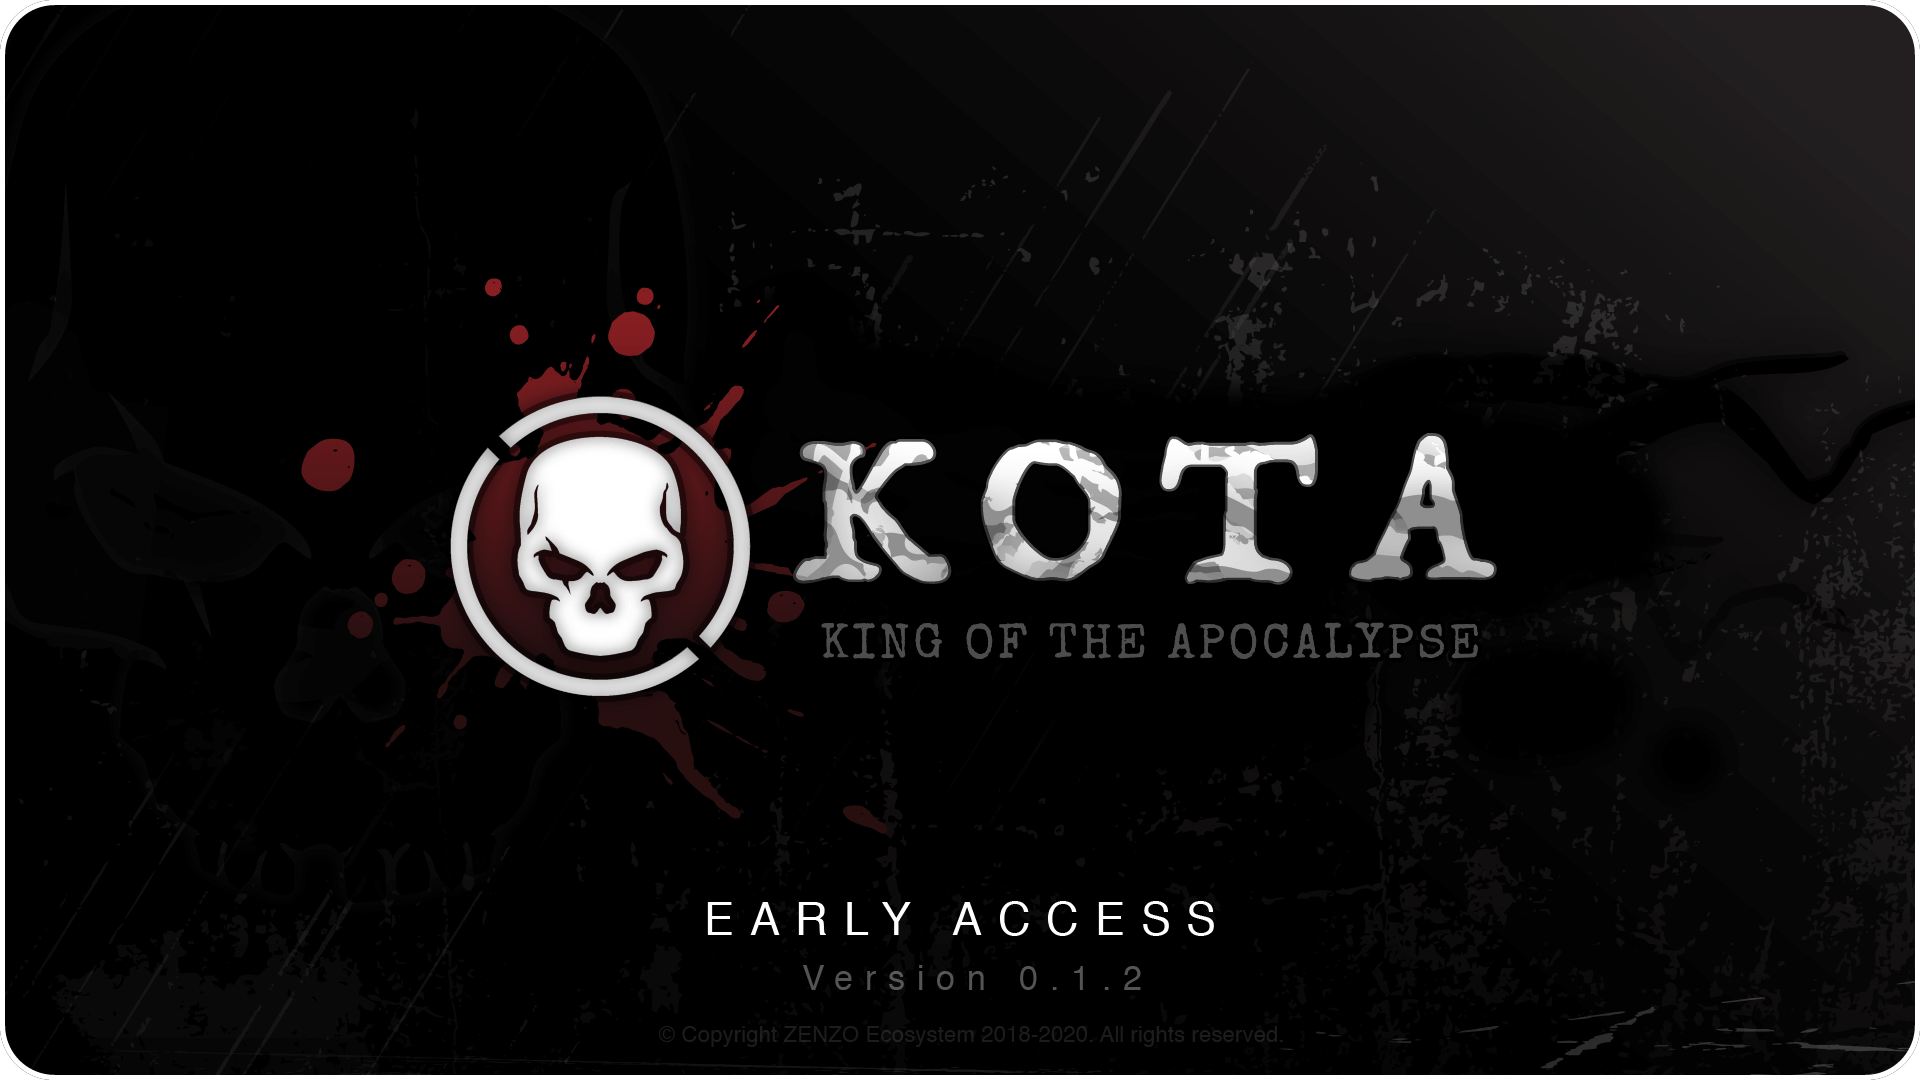 K.O.T.A. (King of The Apocalypse)